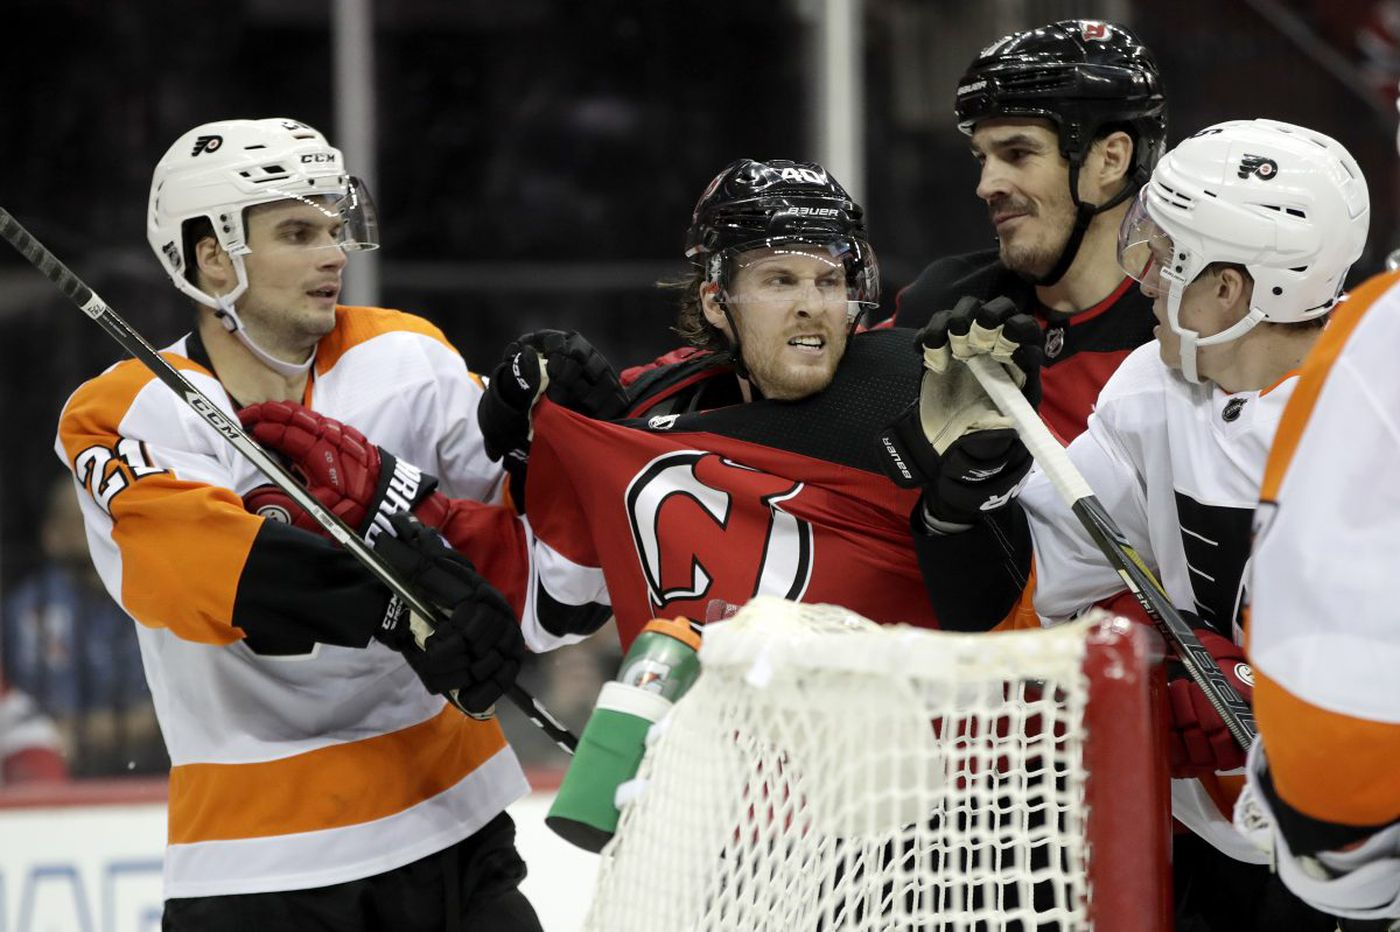 Sean Couturier nets two goals as Flyers top Devils, 5-3